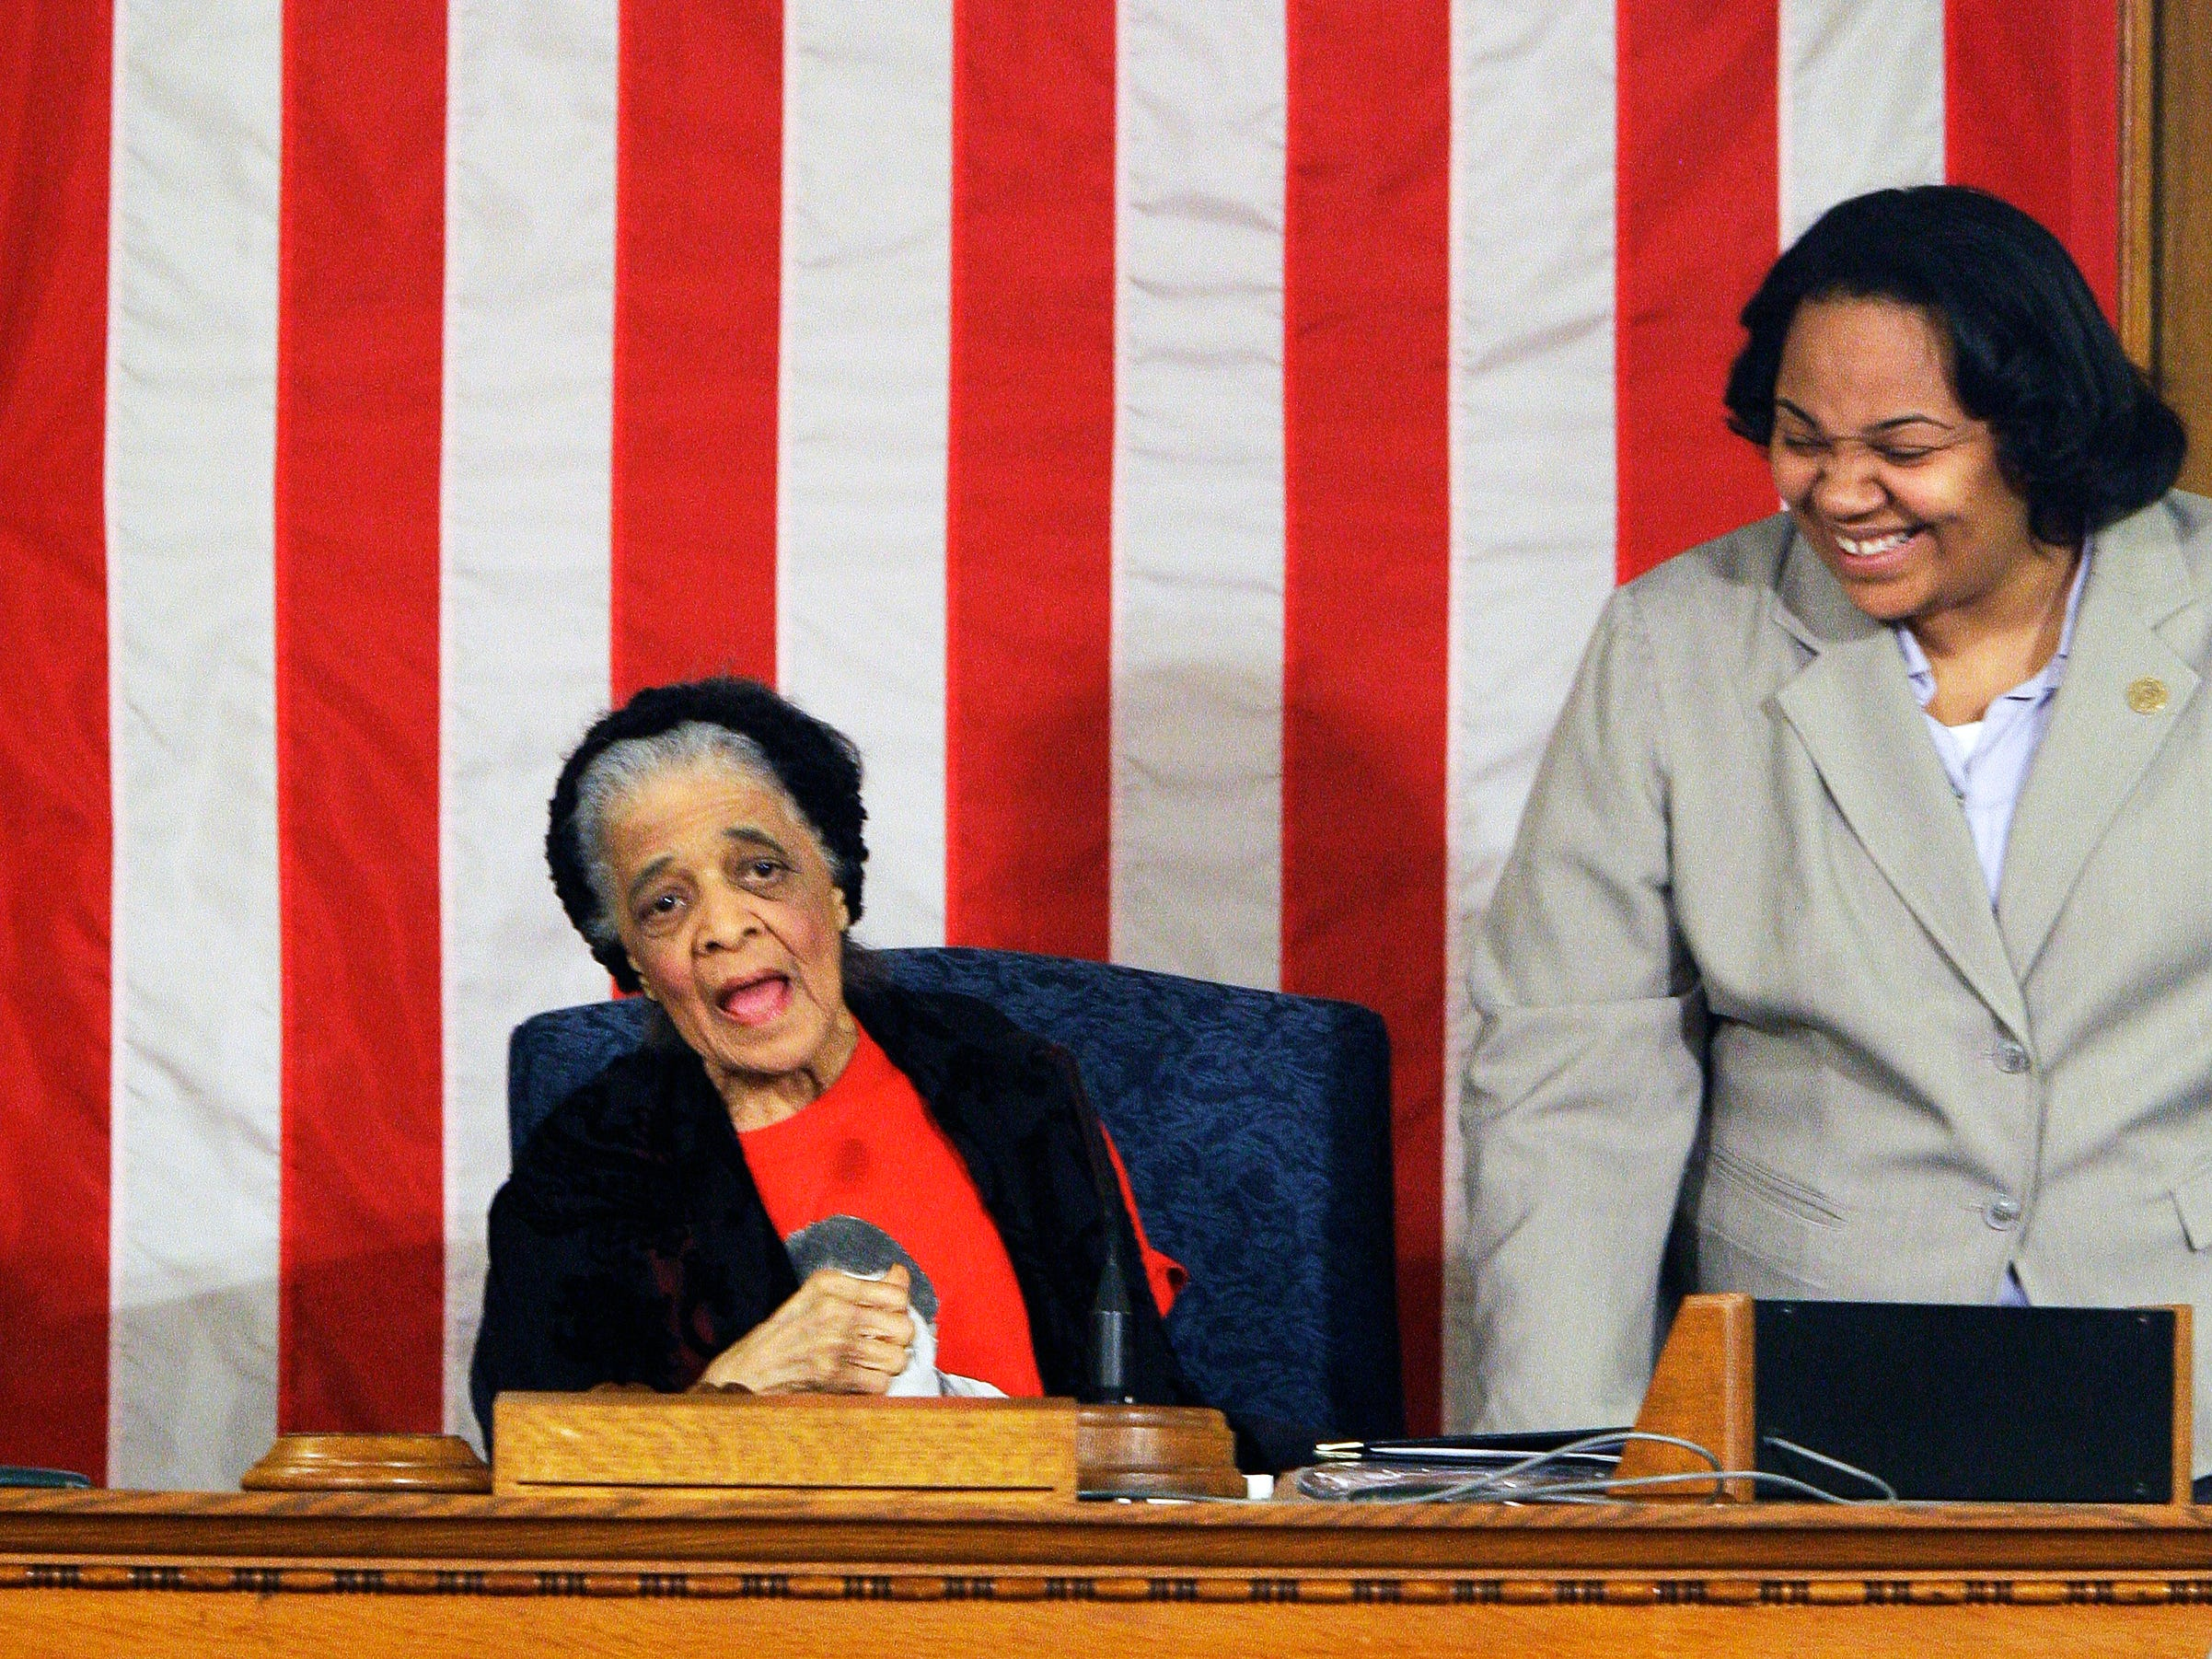 Vel Phillips speaks to the Common Council from the president's desk, while  Alderwoman Milele A. Coggs looks on. Phillips was being honored at the Common Council meeting in this March 4, 2014, Journal Sentinel file photo for her many years as a civil rights advocate. Phillips paved the way as  the first woman and first African American woman in the Milwaukee Common Council. She died in 2018.